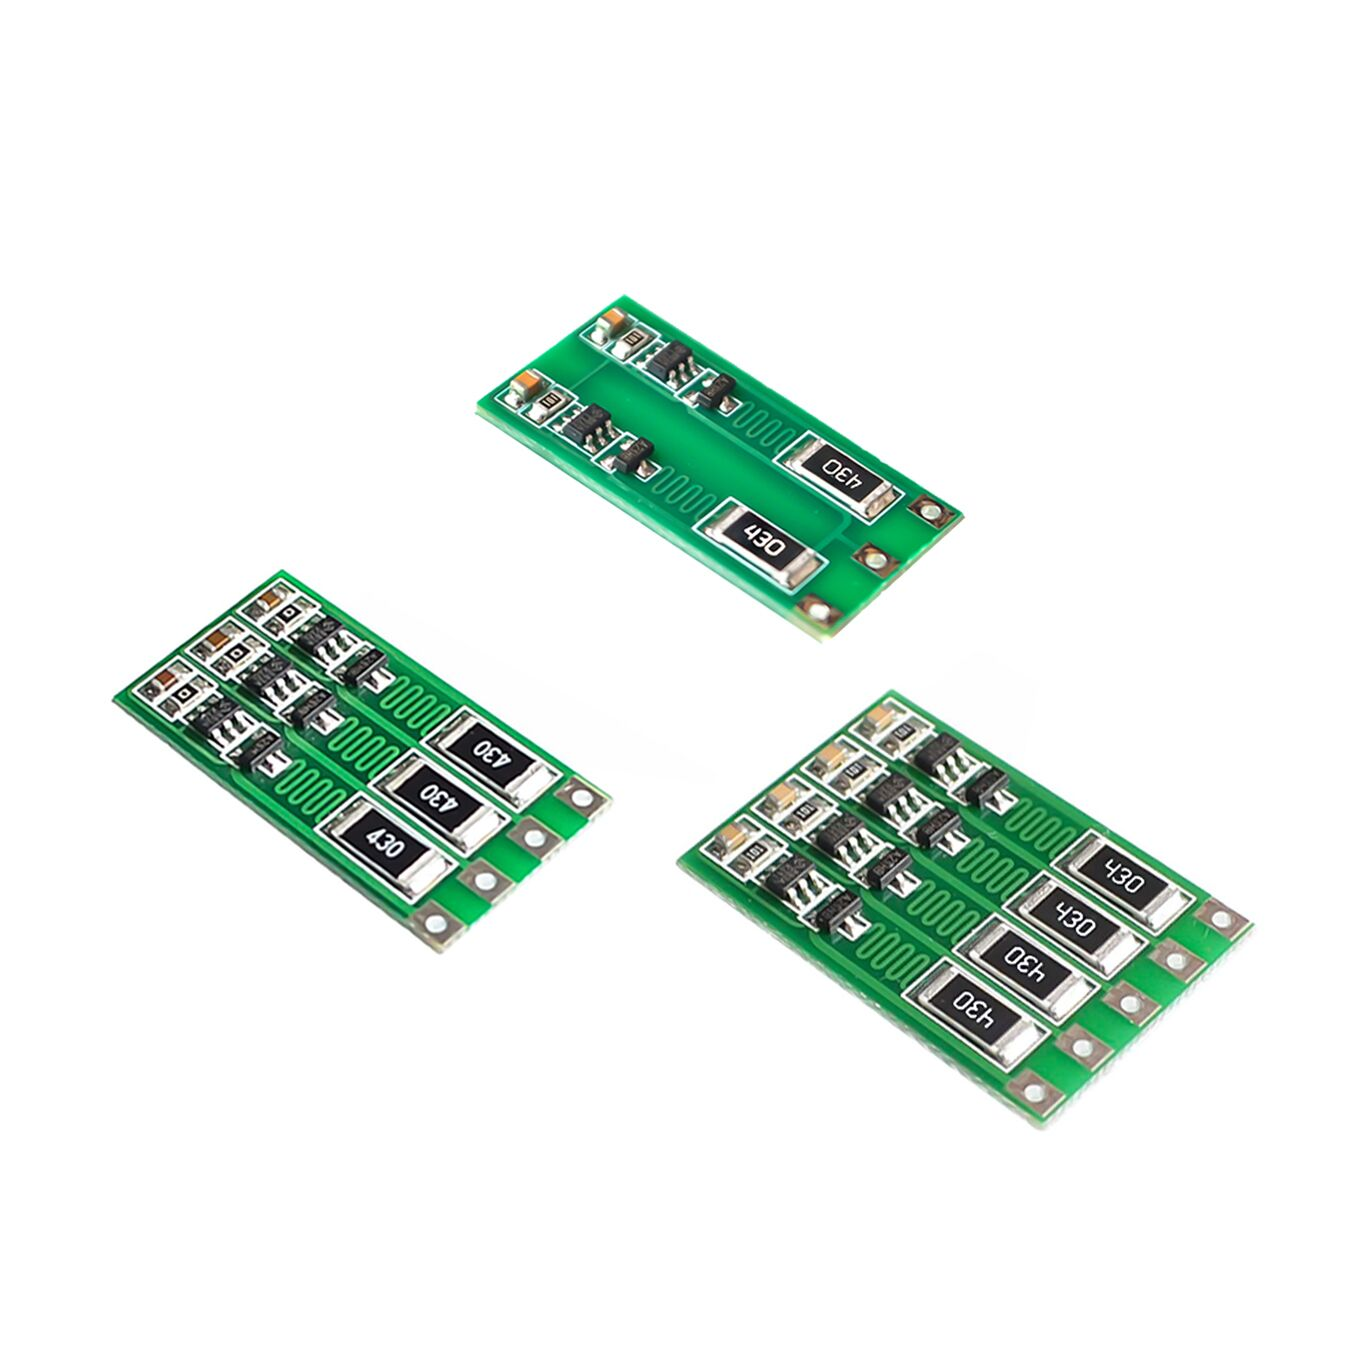 2S 3S 4S 100MA Lithium Battery Balance Board 18650 Li-ion Battery Balancing Board Balancer Current